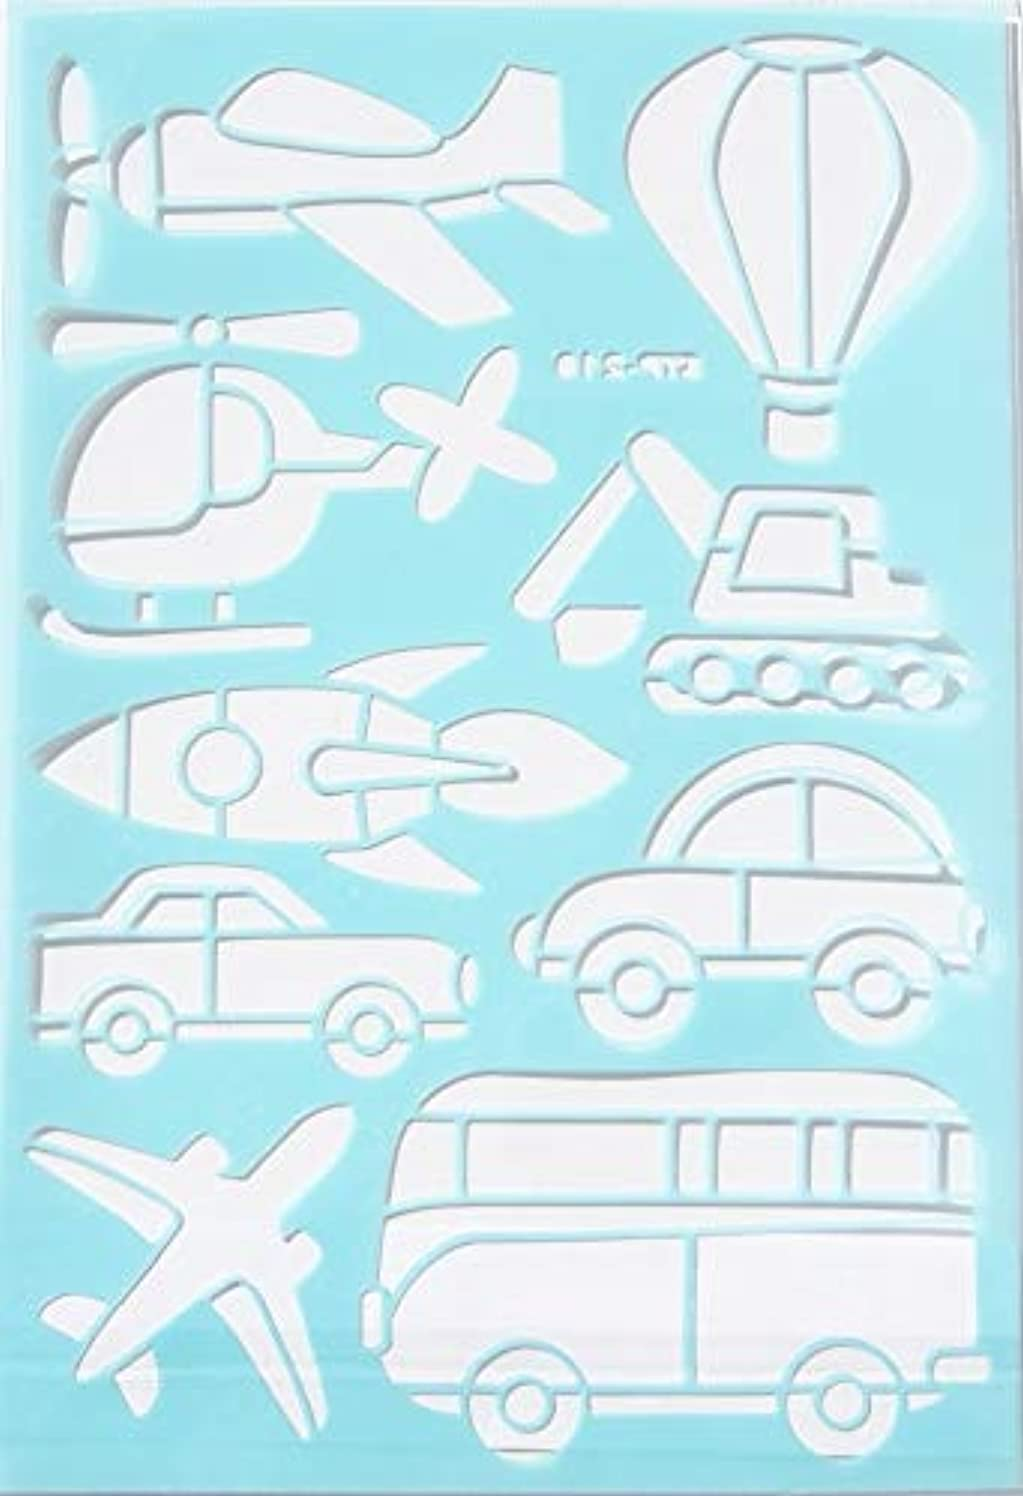 Color Factory Adhesive Multi-Media Planes, Automobiles, and Vehicles Stencil - 7.5 x 11 Inches